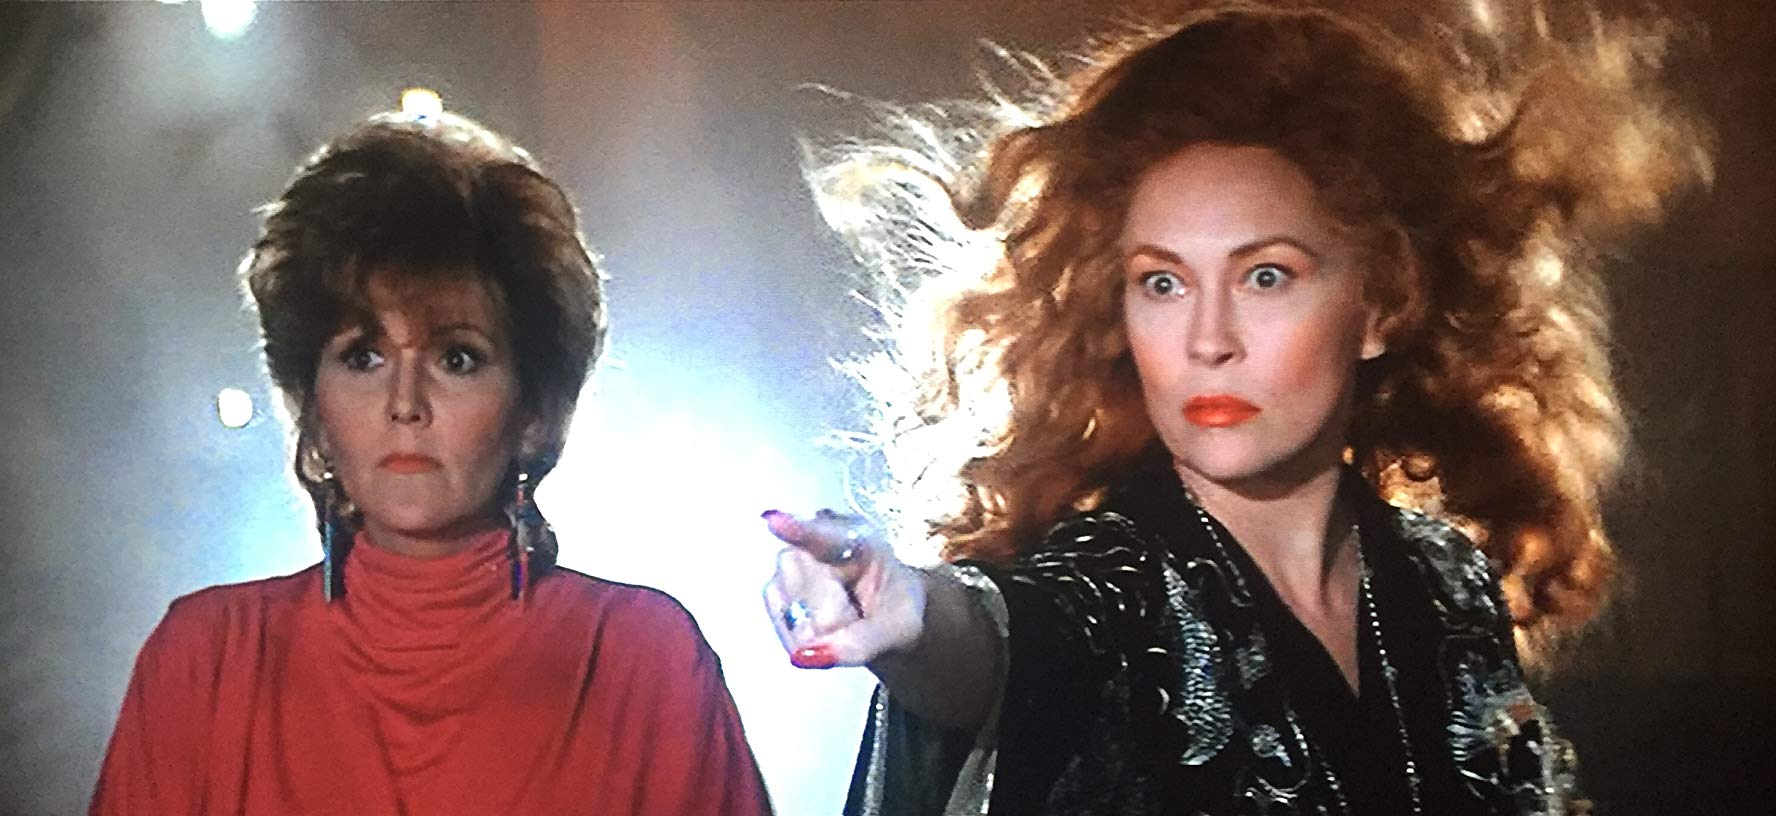 A madly overacting Faye Dunaway as the witch Selena (r) and her assistant Brenda Vaccaro (l) in Supergirl (1984)